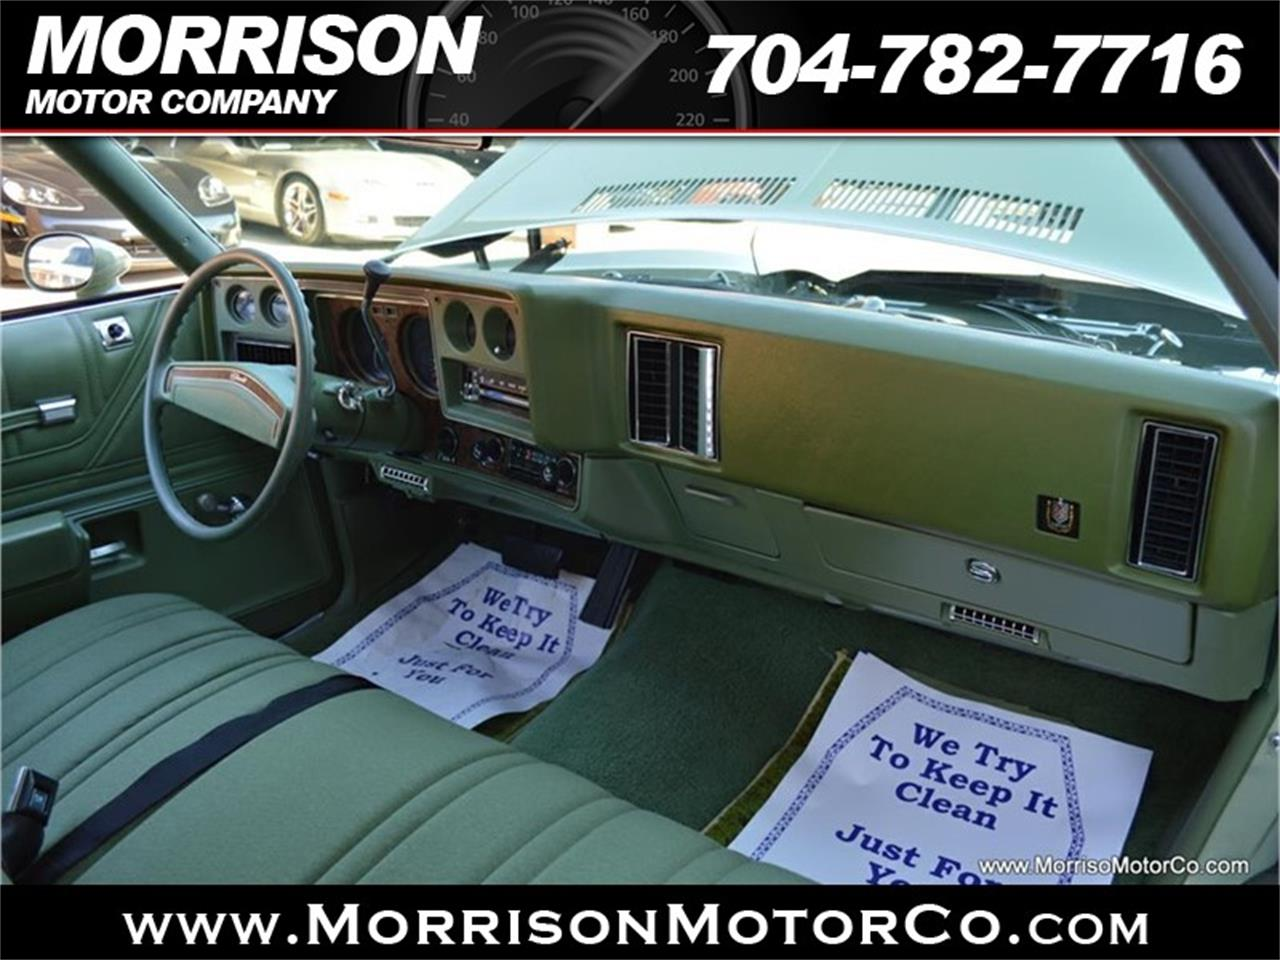 Large Picture of 1974 Chevrolet Monte Carlo located in Concord North Carolina Offered by Morrison Motor Company - PEZN